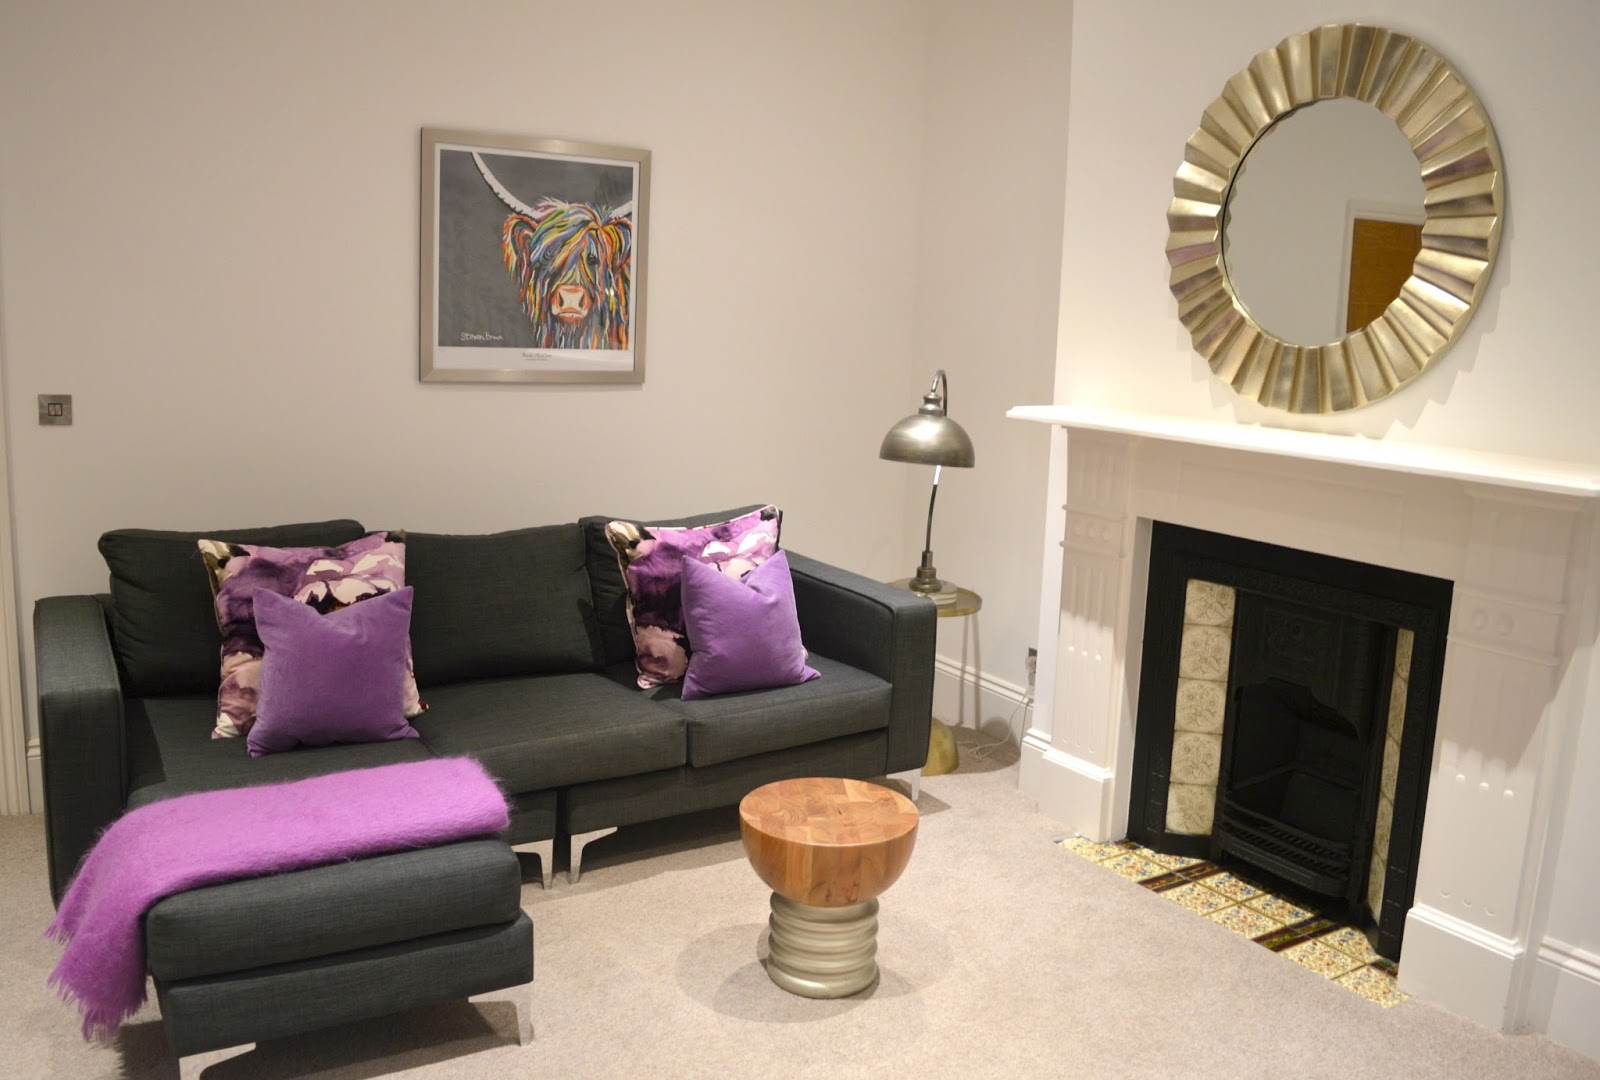 St George's Four One Bed Apartment in Harrogate